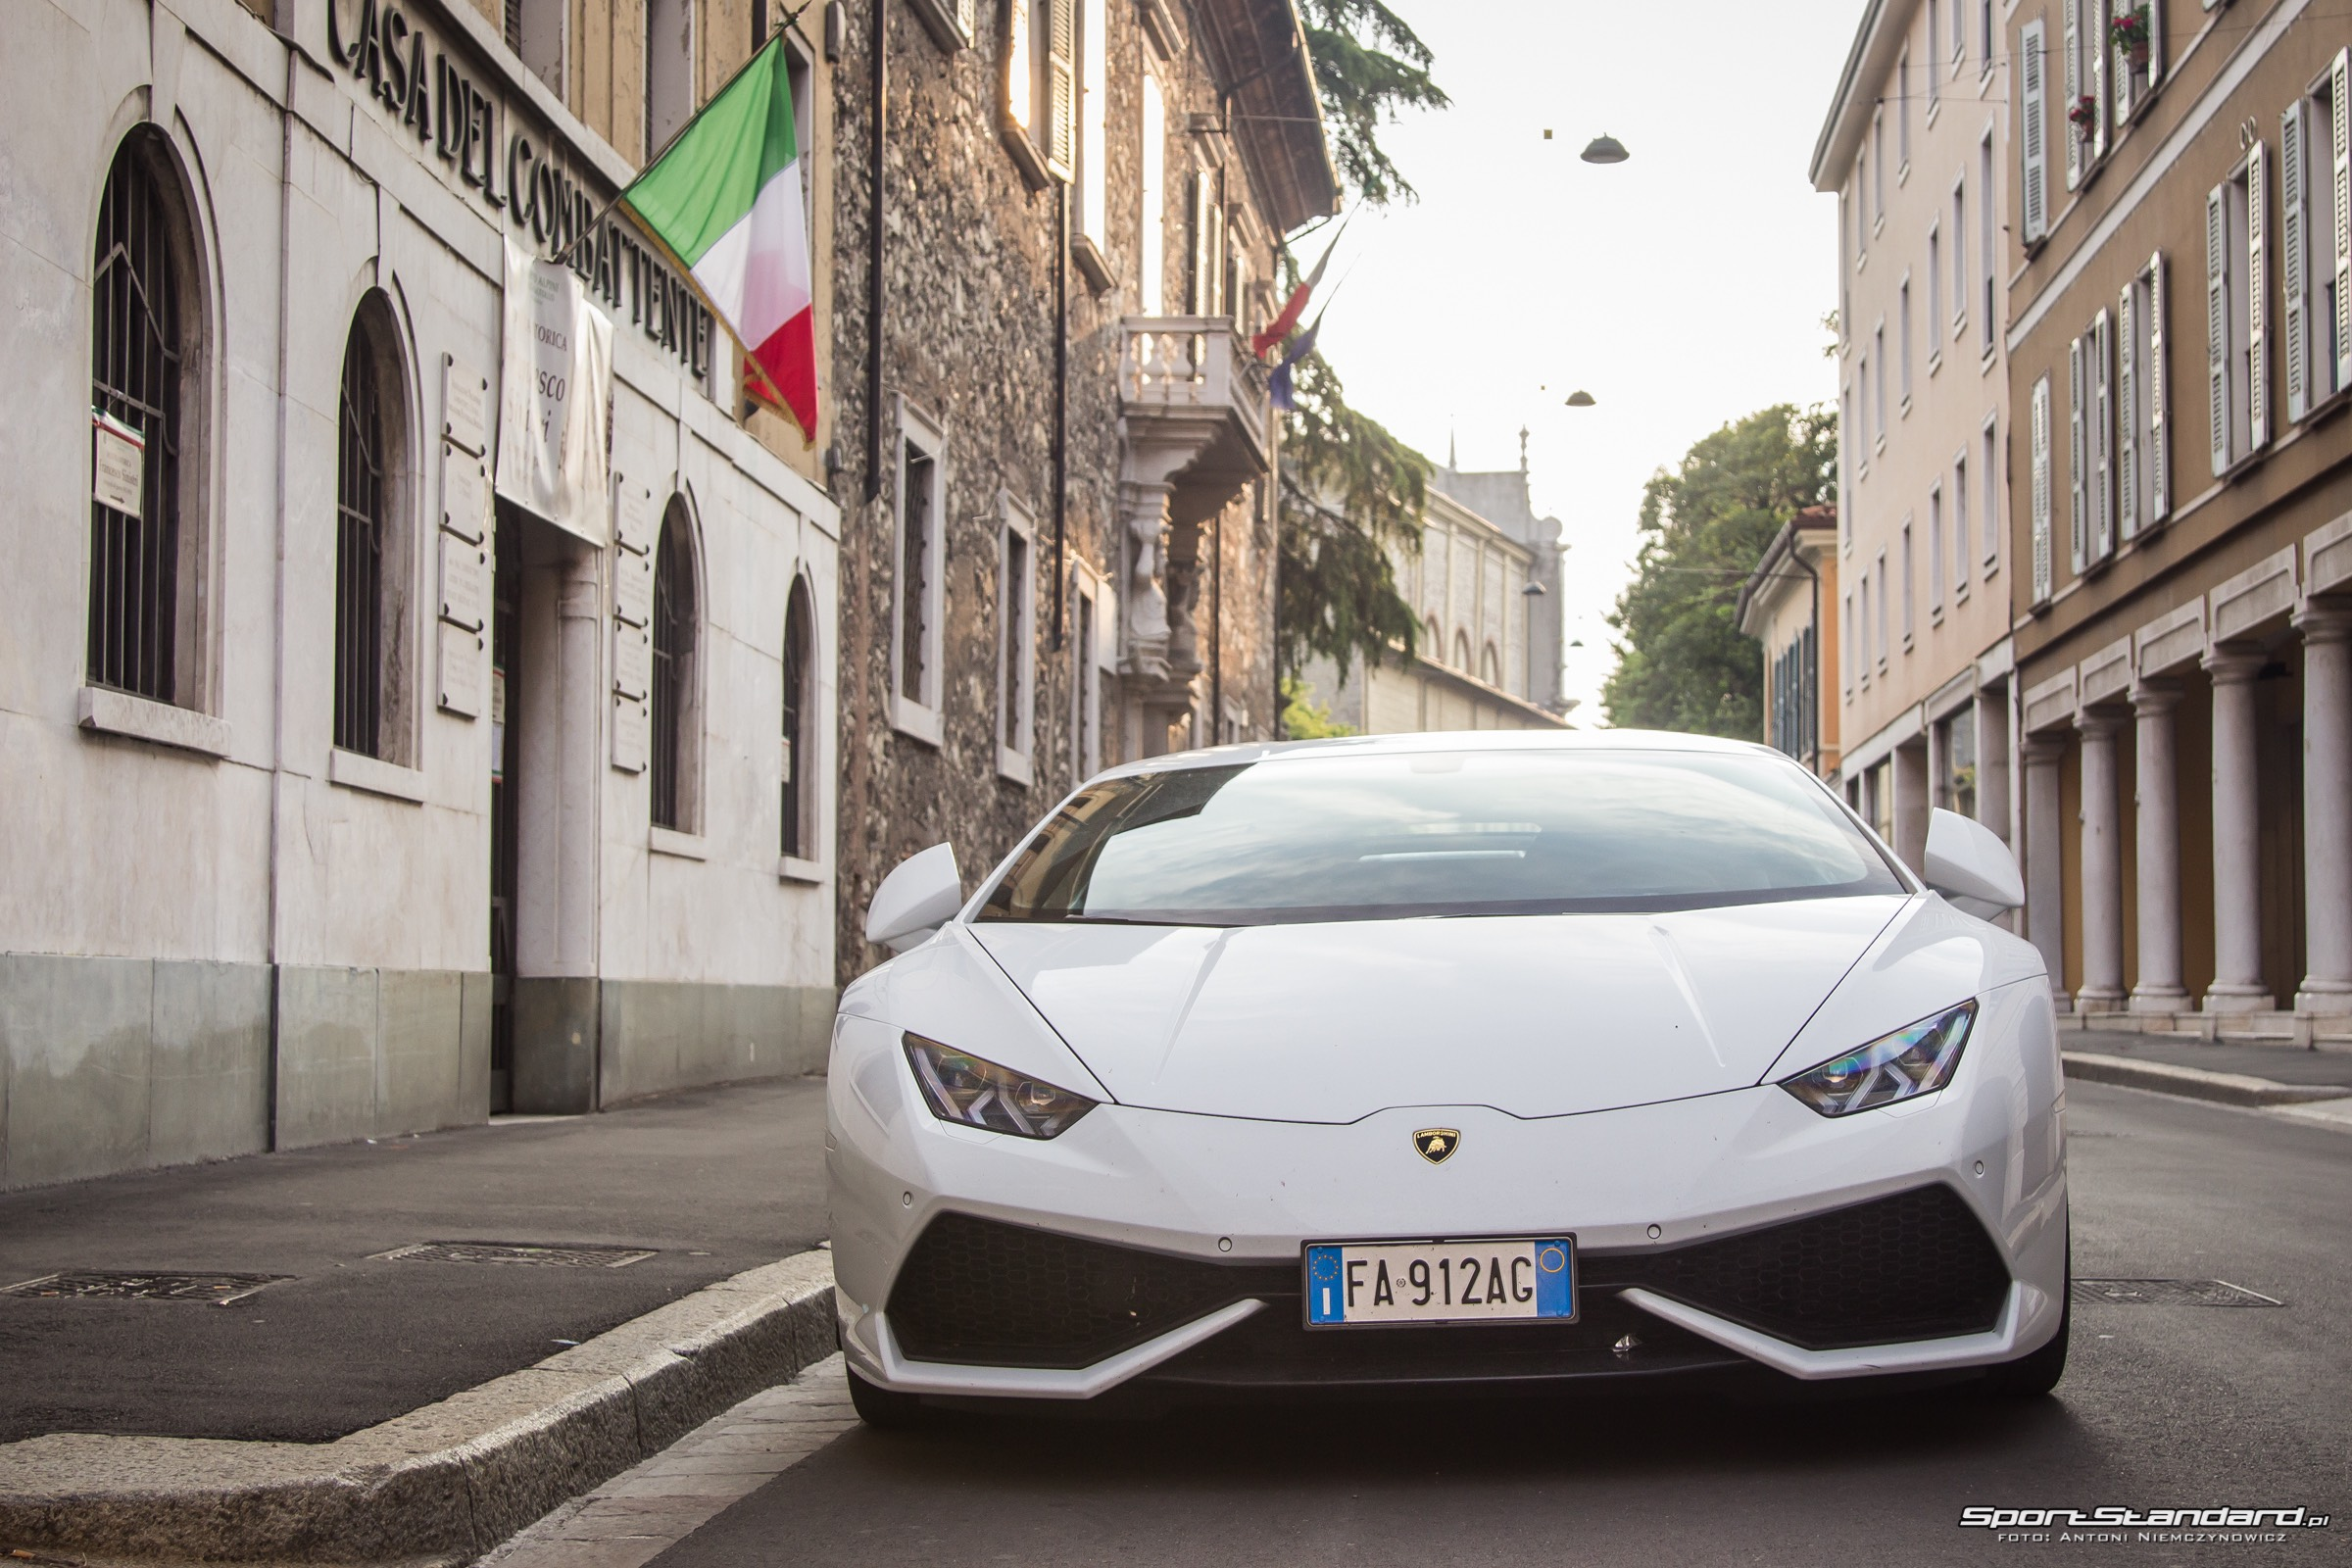 Wallpaper_Lambo_hurracan_brescia-1